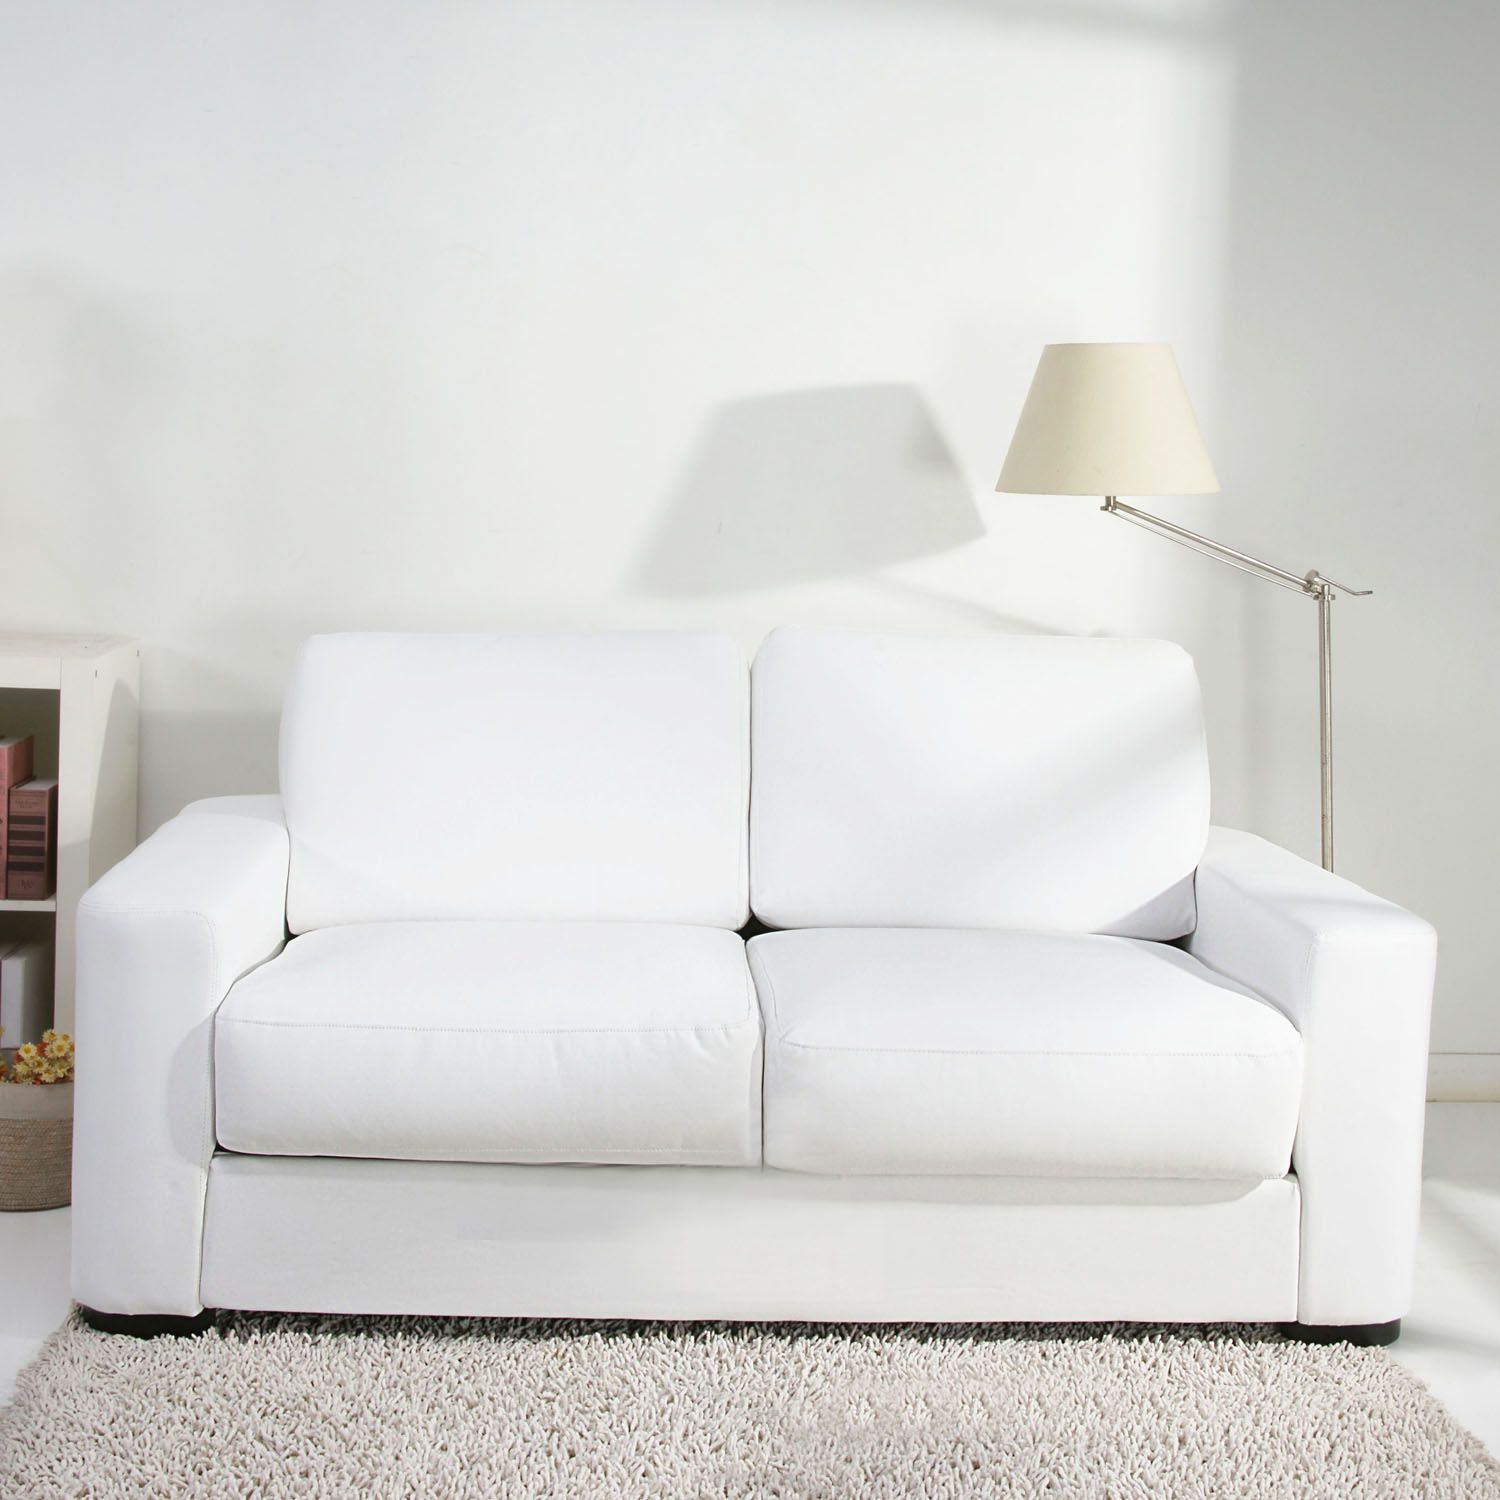 Cleaning White Fabric Sofa Princeton Leather 6 Easy Steps On Your